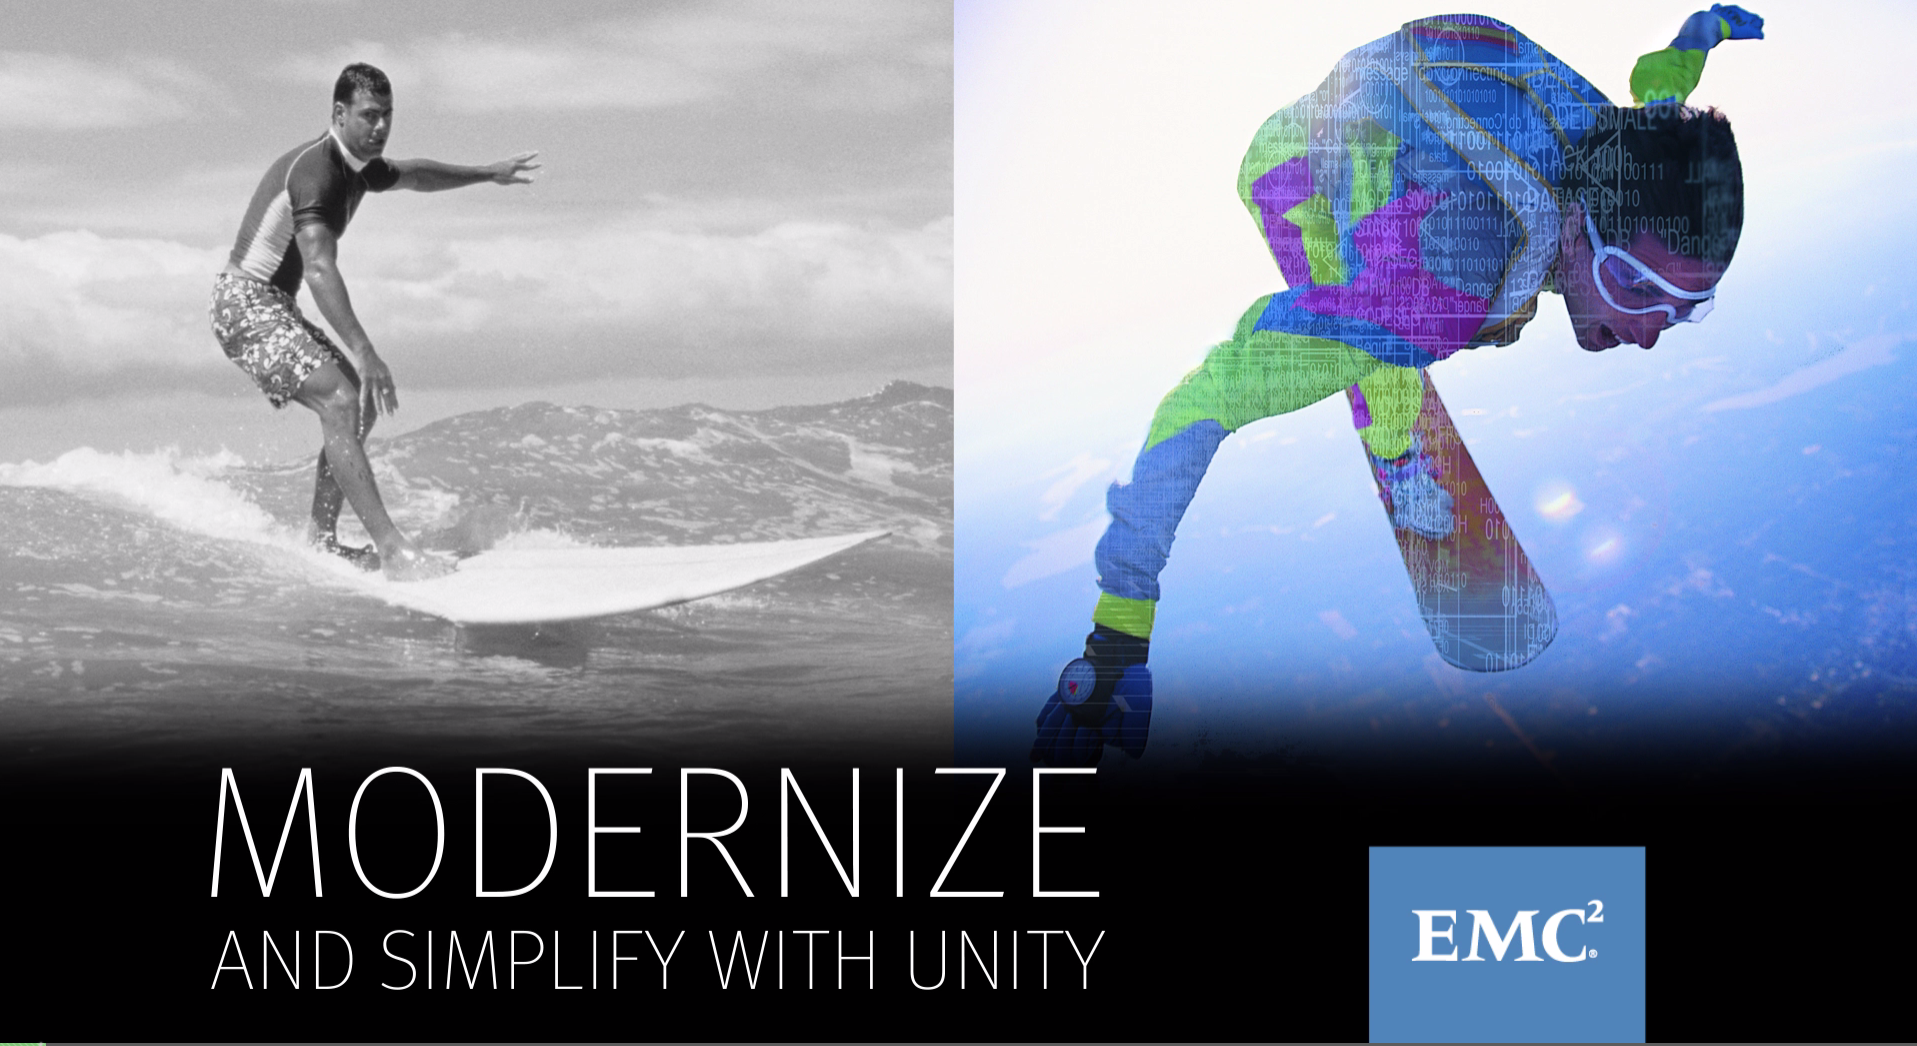 Modernize and Simplify With Unity